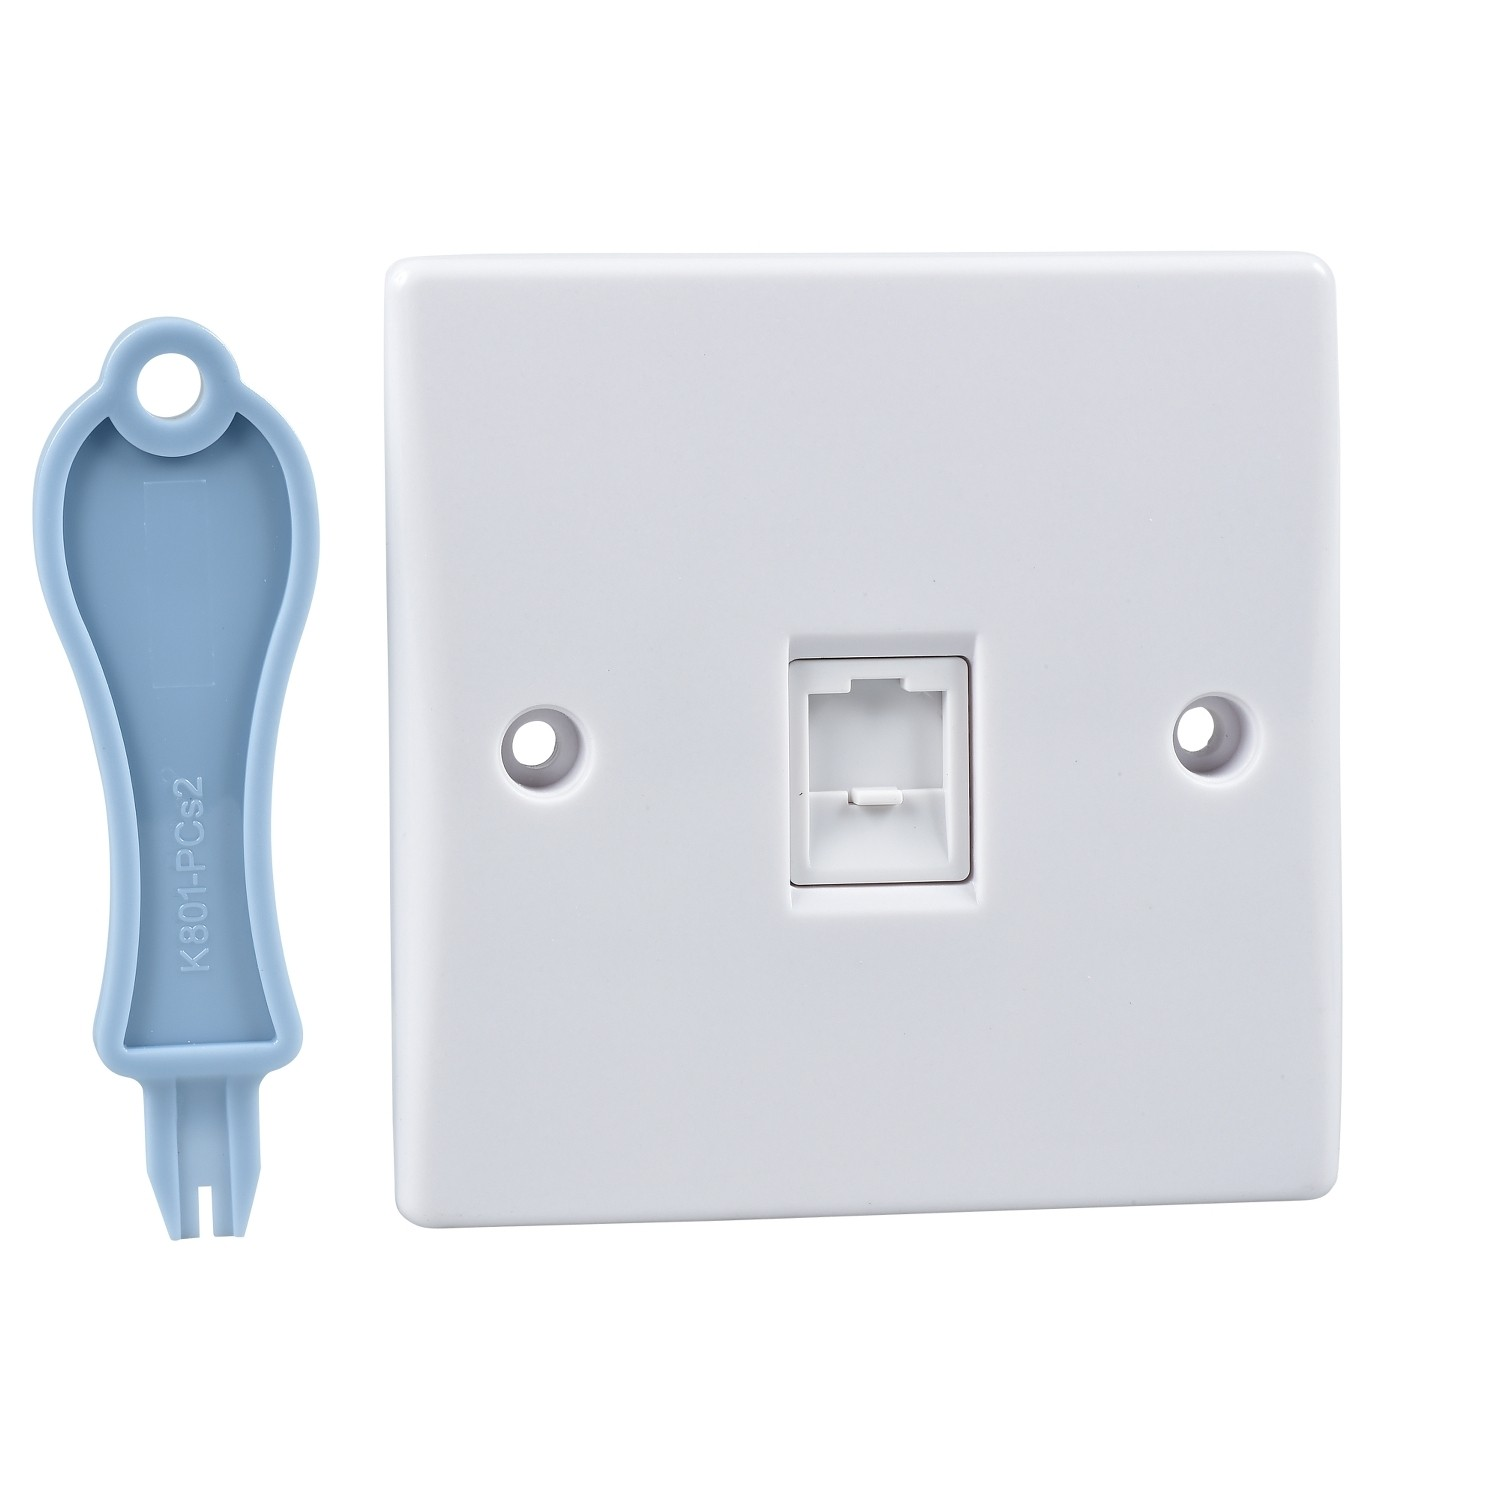 Schneider GU7071 Ultimate Slimline 1 Gang Single RJ45 Data Socket